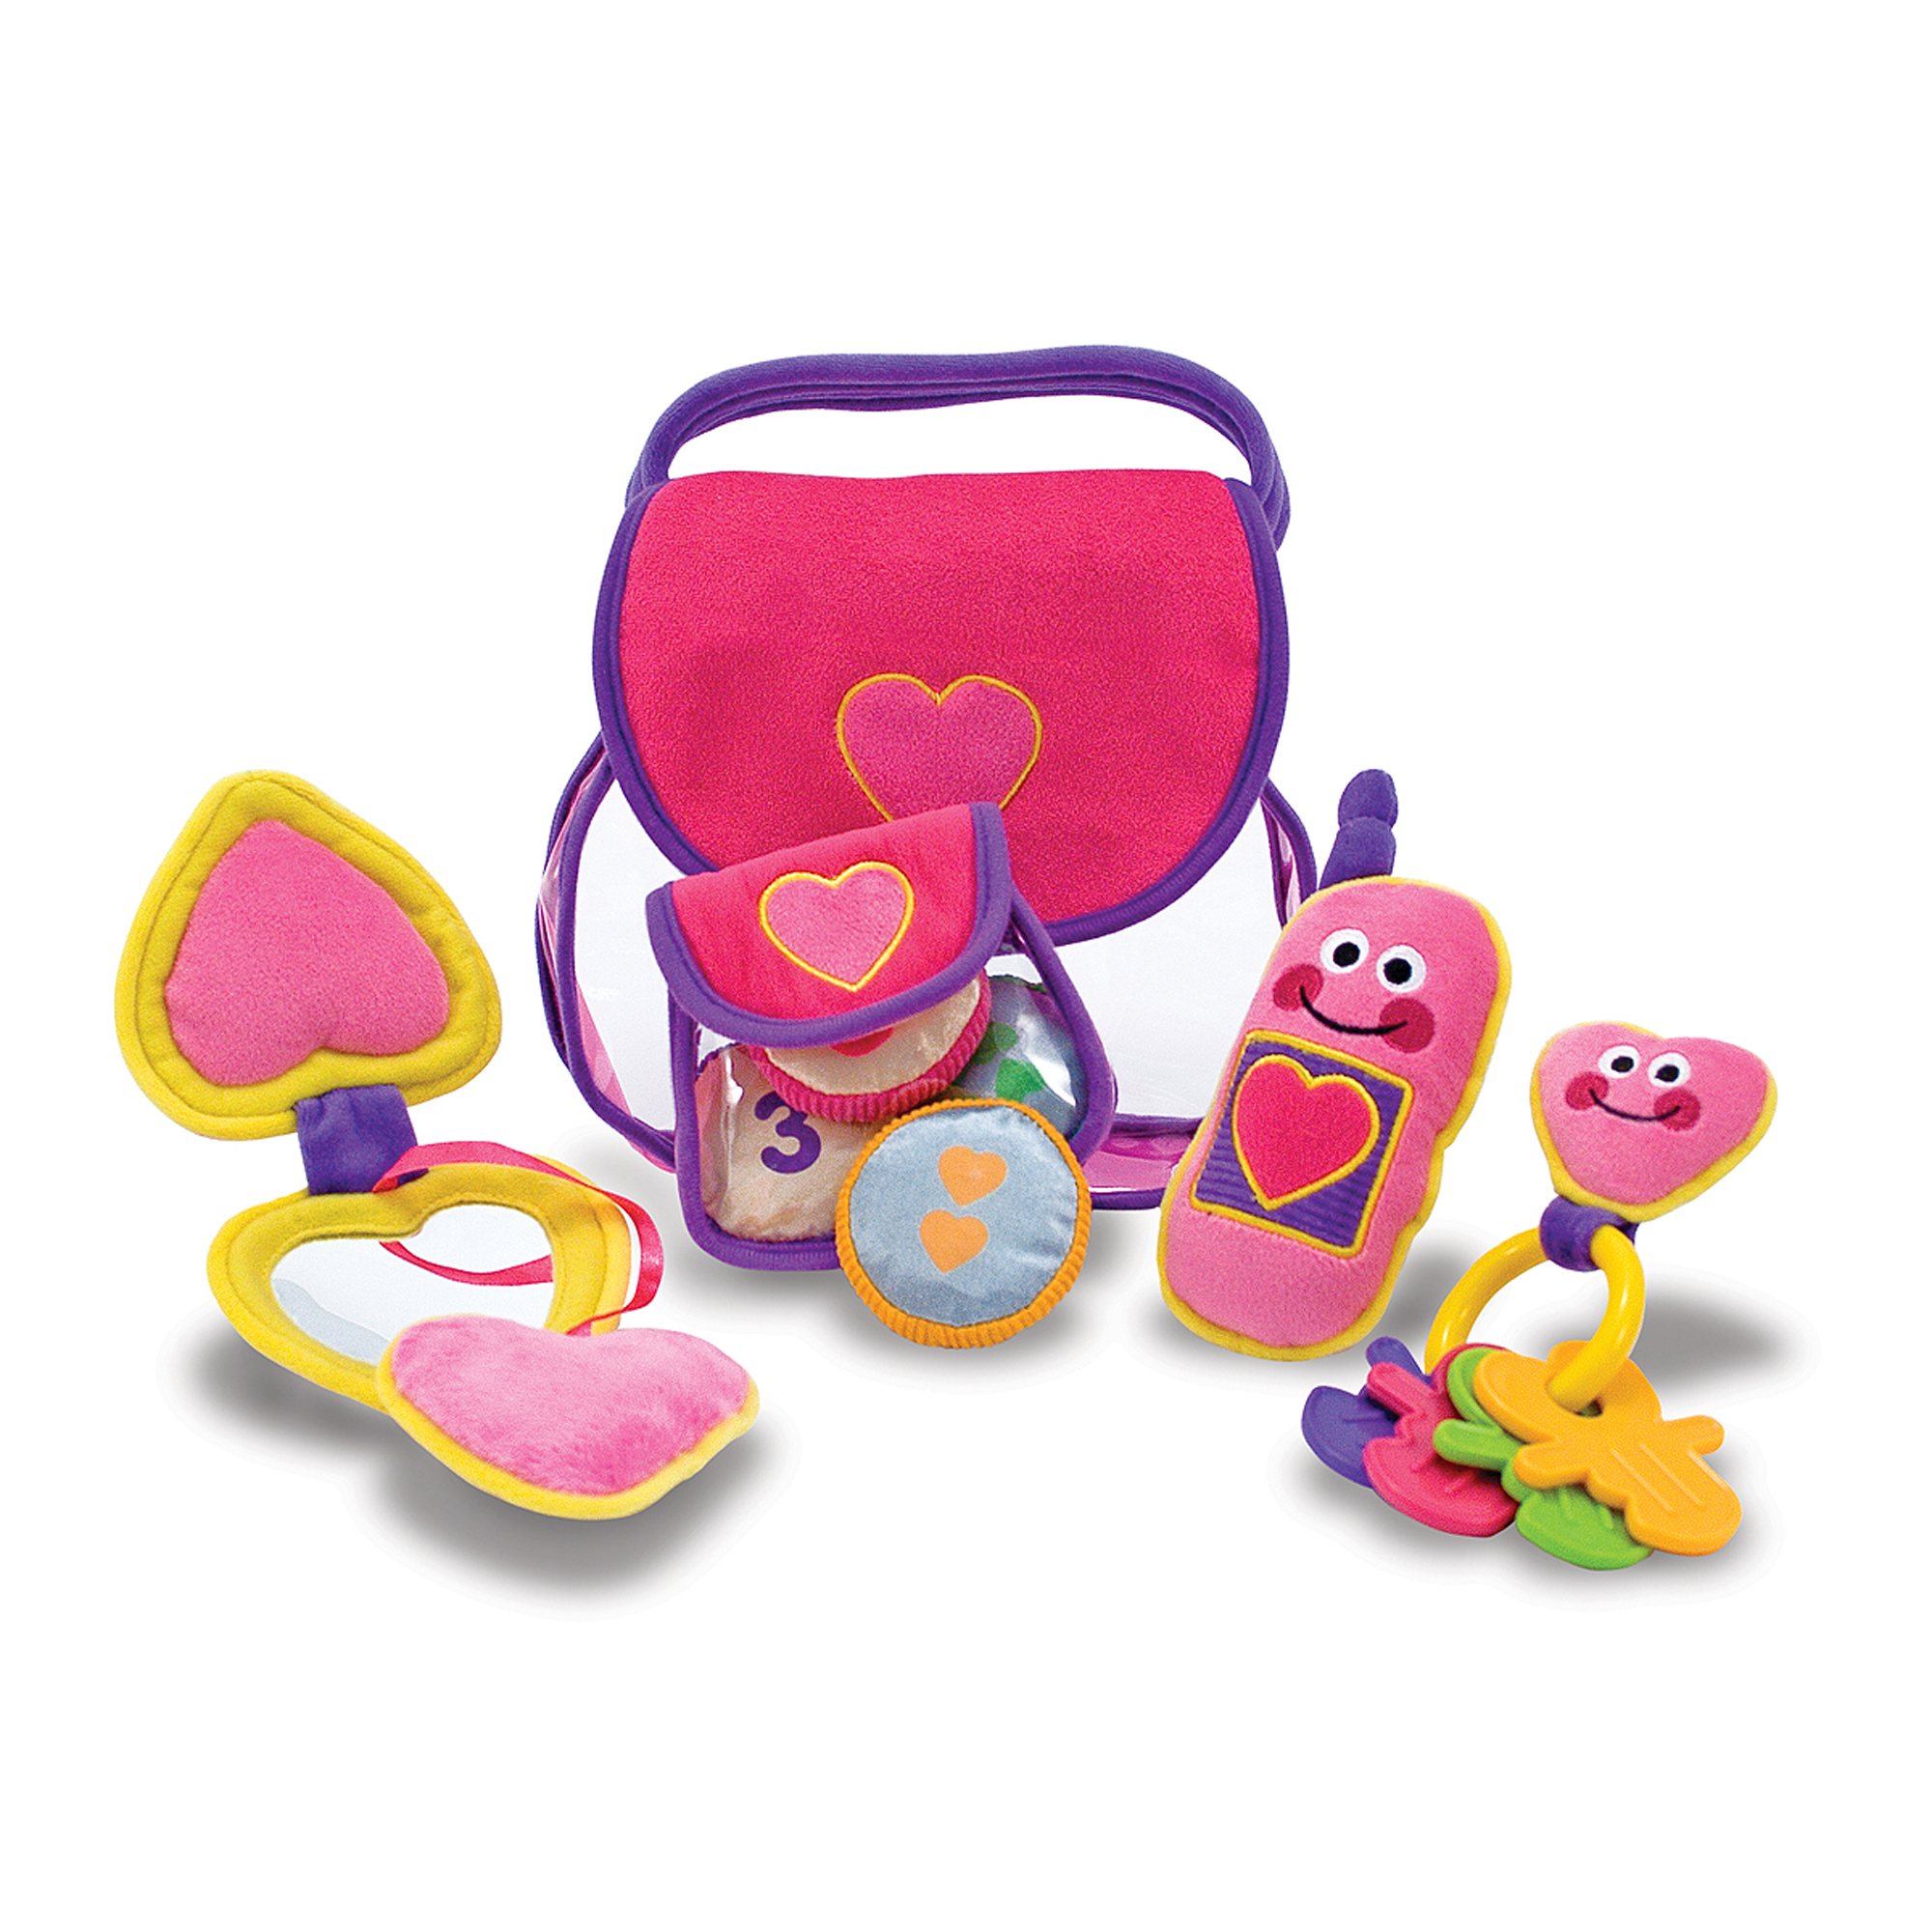 Pretty Purse Fill and Spill Toddler Toy (000772030496 Baby & Toddler) photo